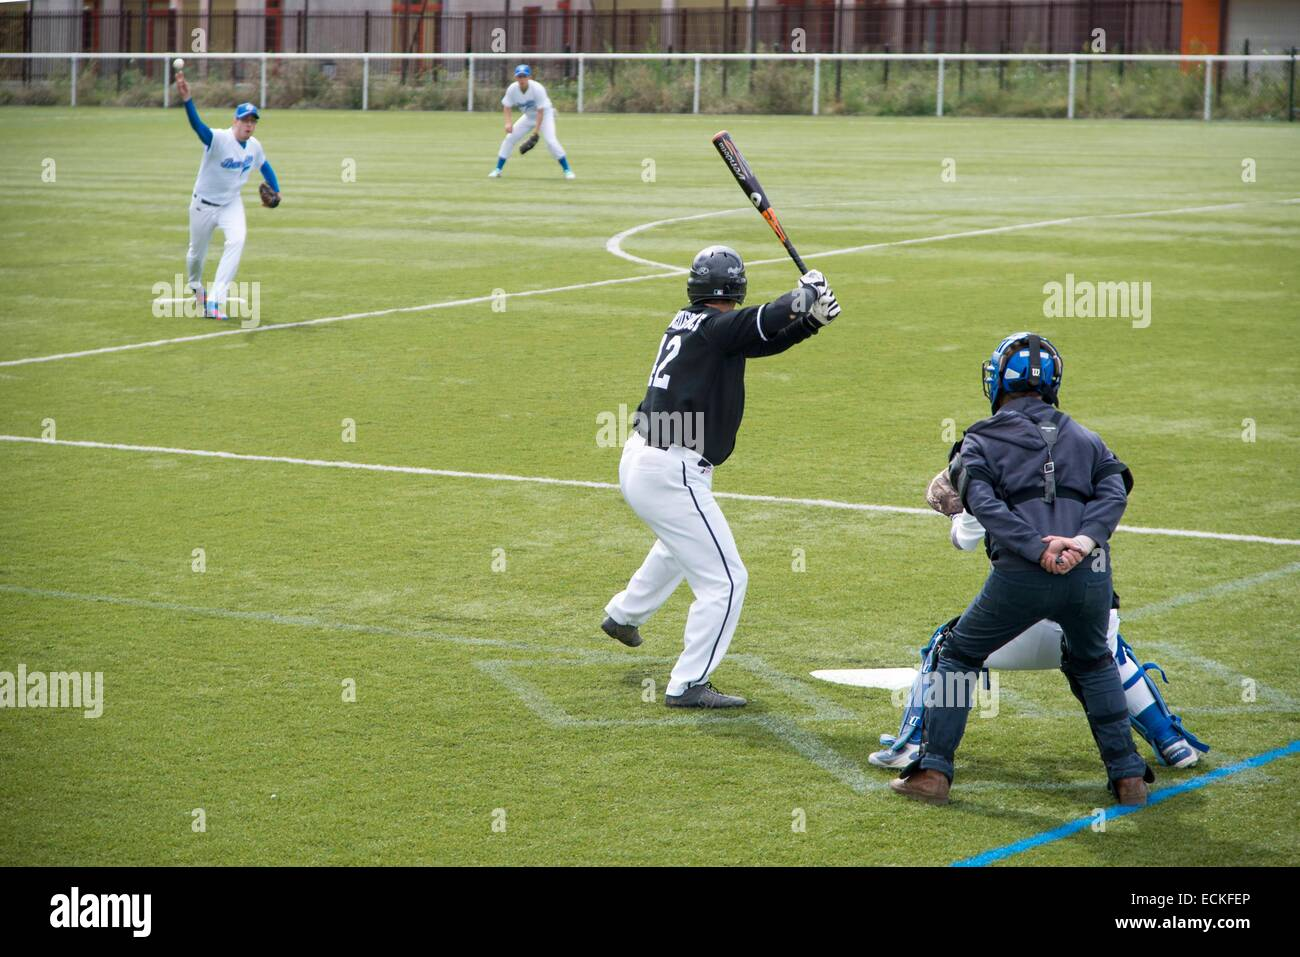 Francia, Seine Saint Denis, Tremblay en France, Tremblay en France, partido de béisbol Imagen De Stock